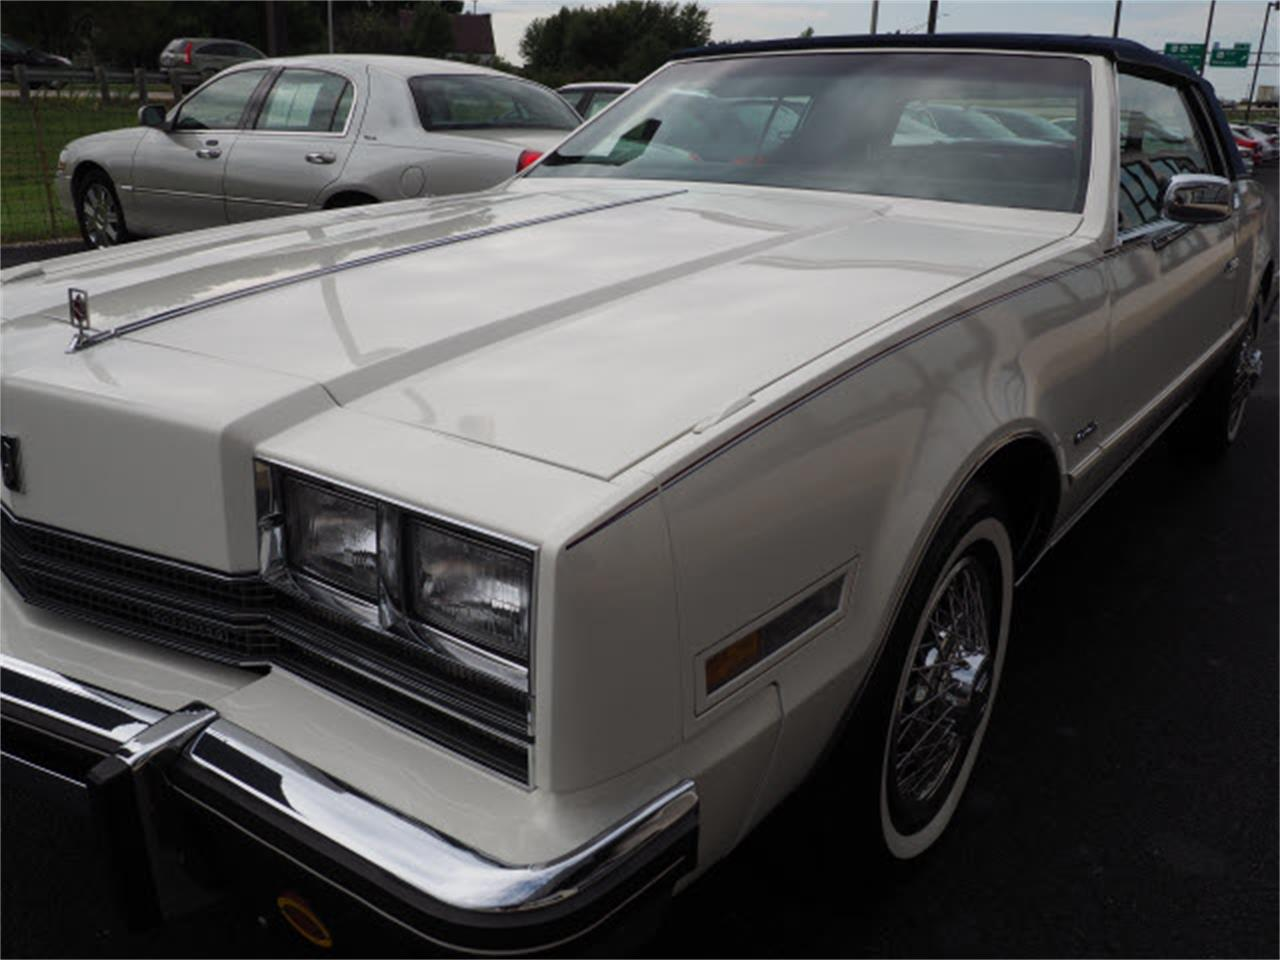 Large Picture of '85 Oldsmobile Toronado located in Ohio - $14,999.00 - LUQO